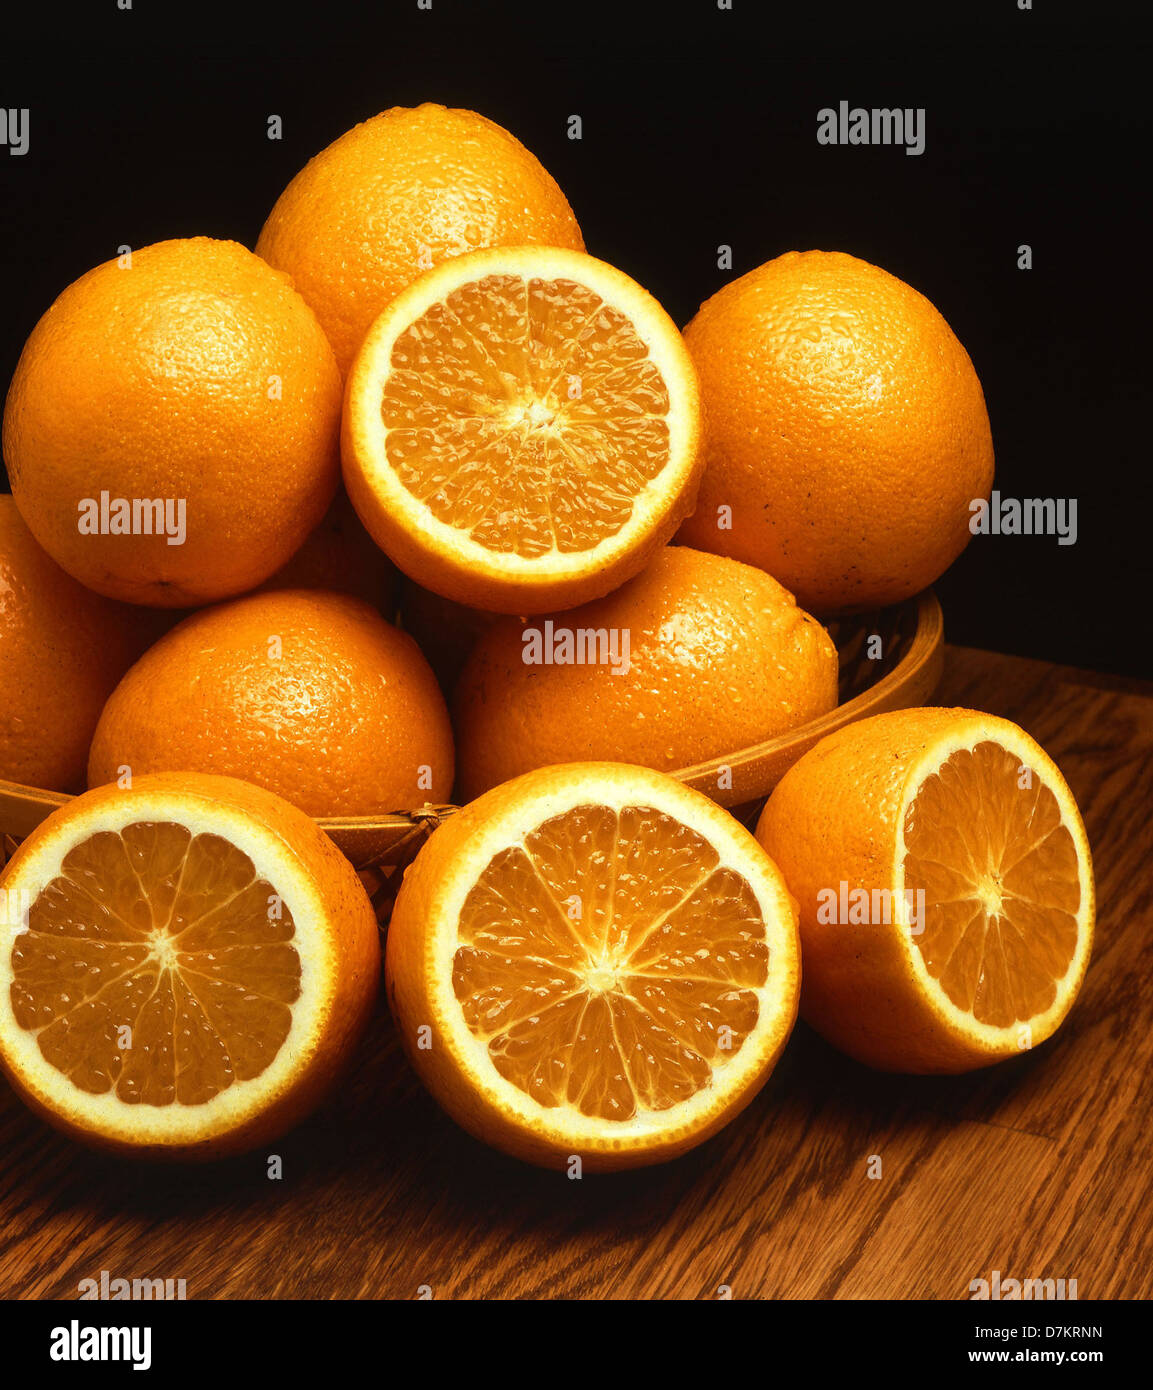 Ambersweet, a new cold hardy orange variety March 1, 2012. Stock Photo